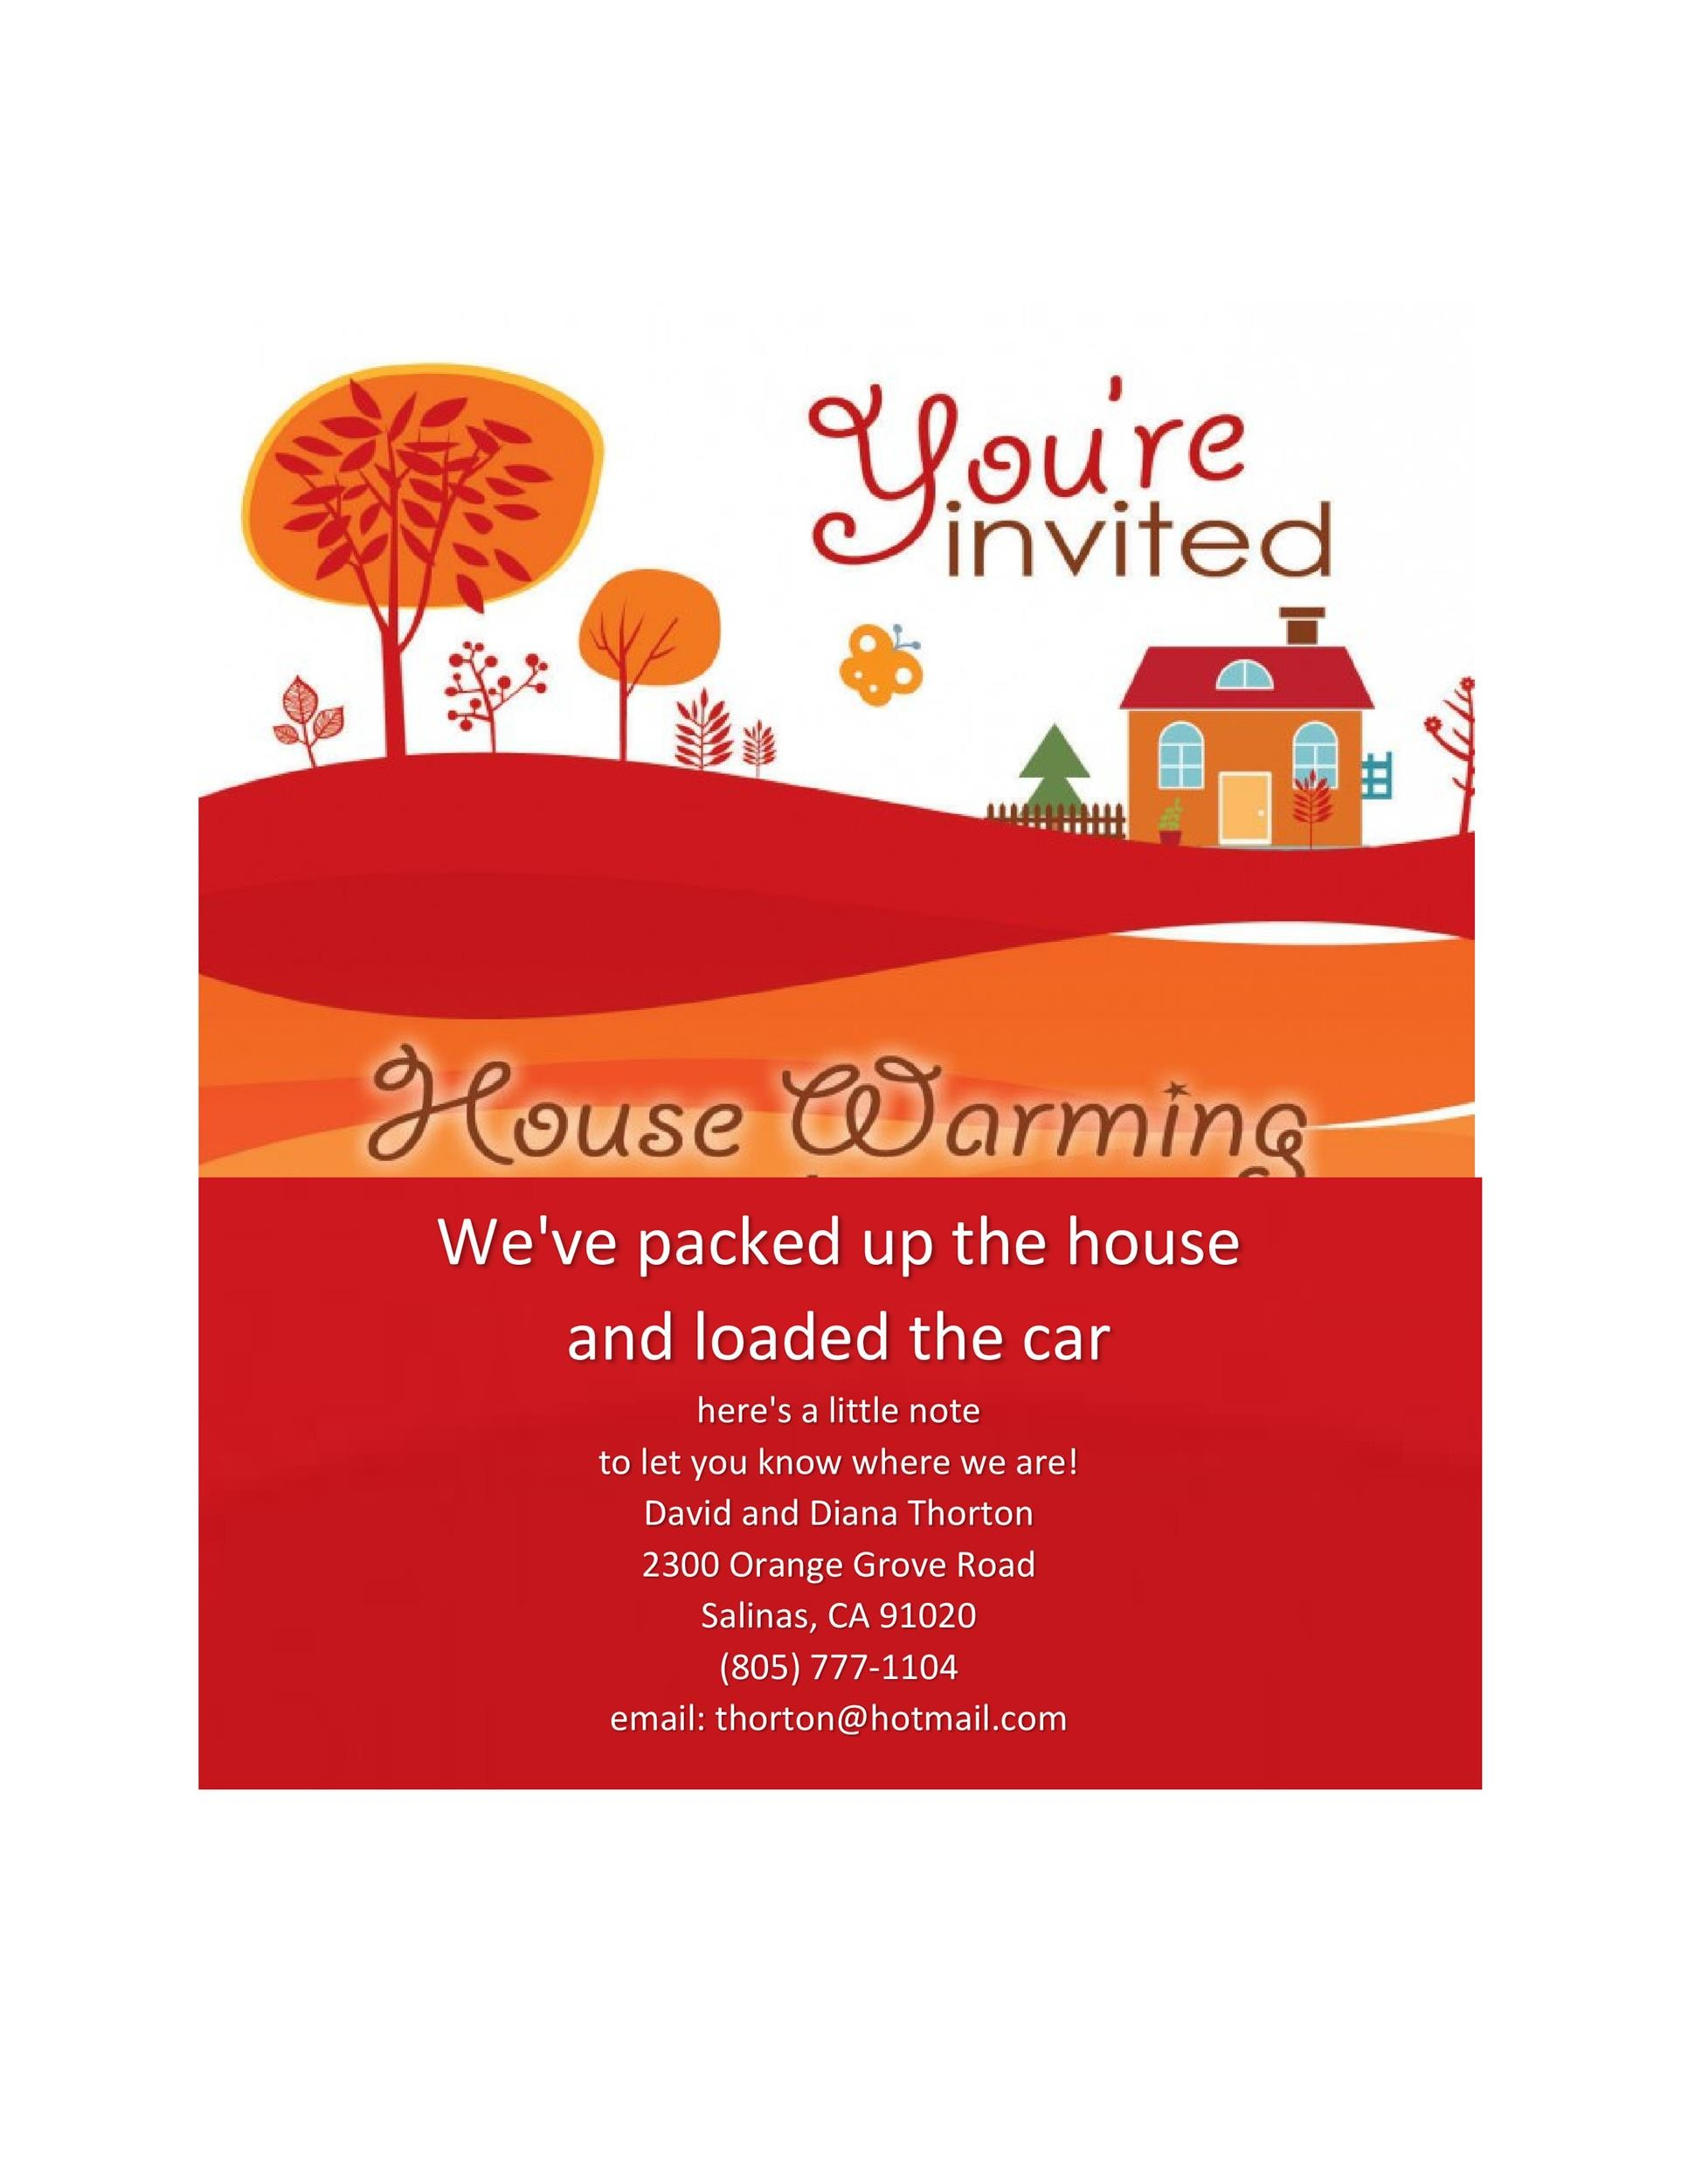 photo regarding Free Printable Housewarming Invitations titled 40+ Free of charge Printable Housewarming Social gathering Invitation Templates